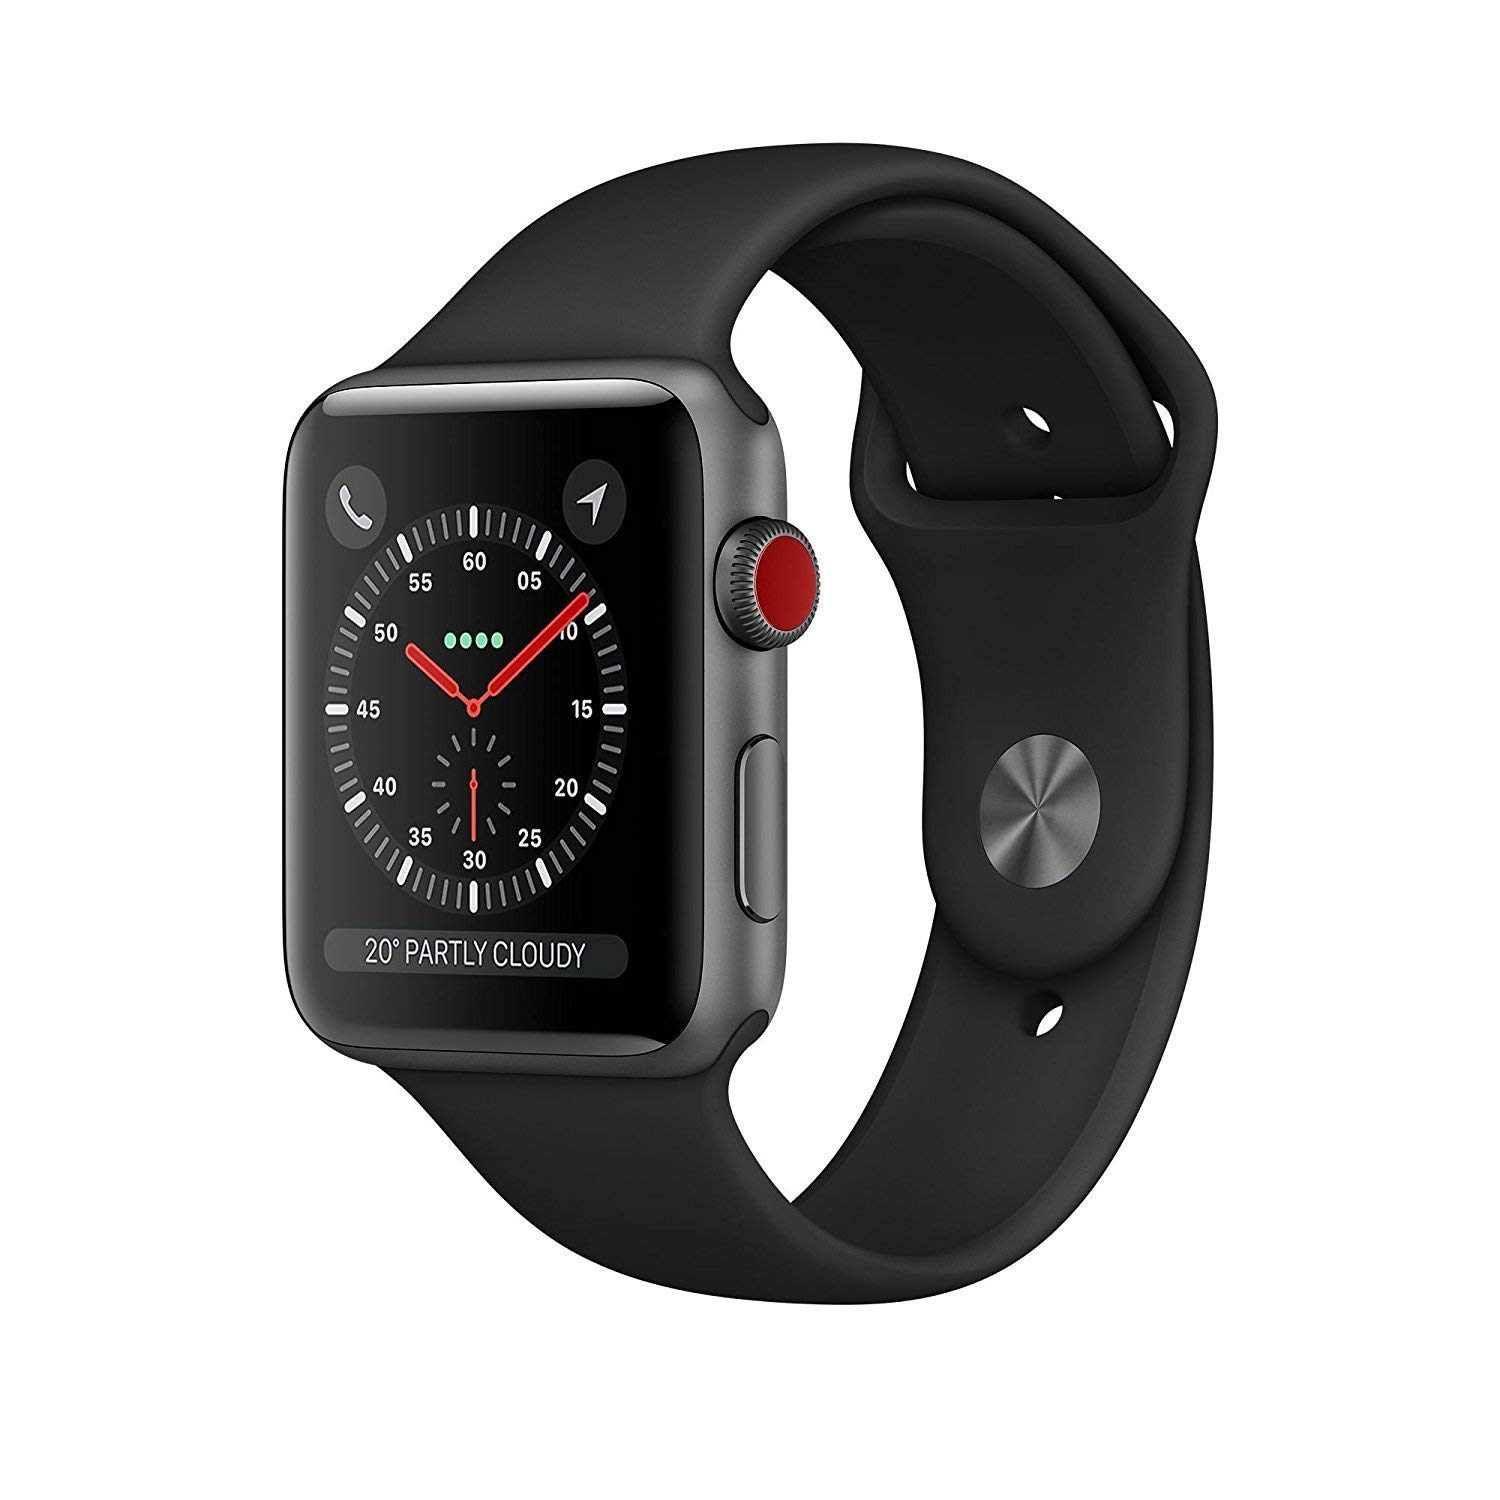 Amazon.com: Apple Watch Series 3 (GPS), 42mm Space Gray Aluminum Case with Gray Sport Band - MR362LL/A (Renewed): Cell Phones & Accessories